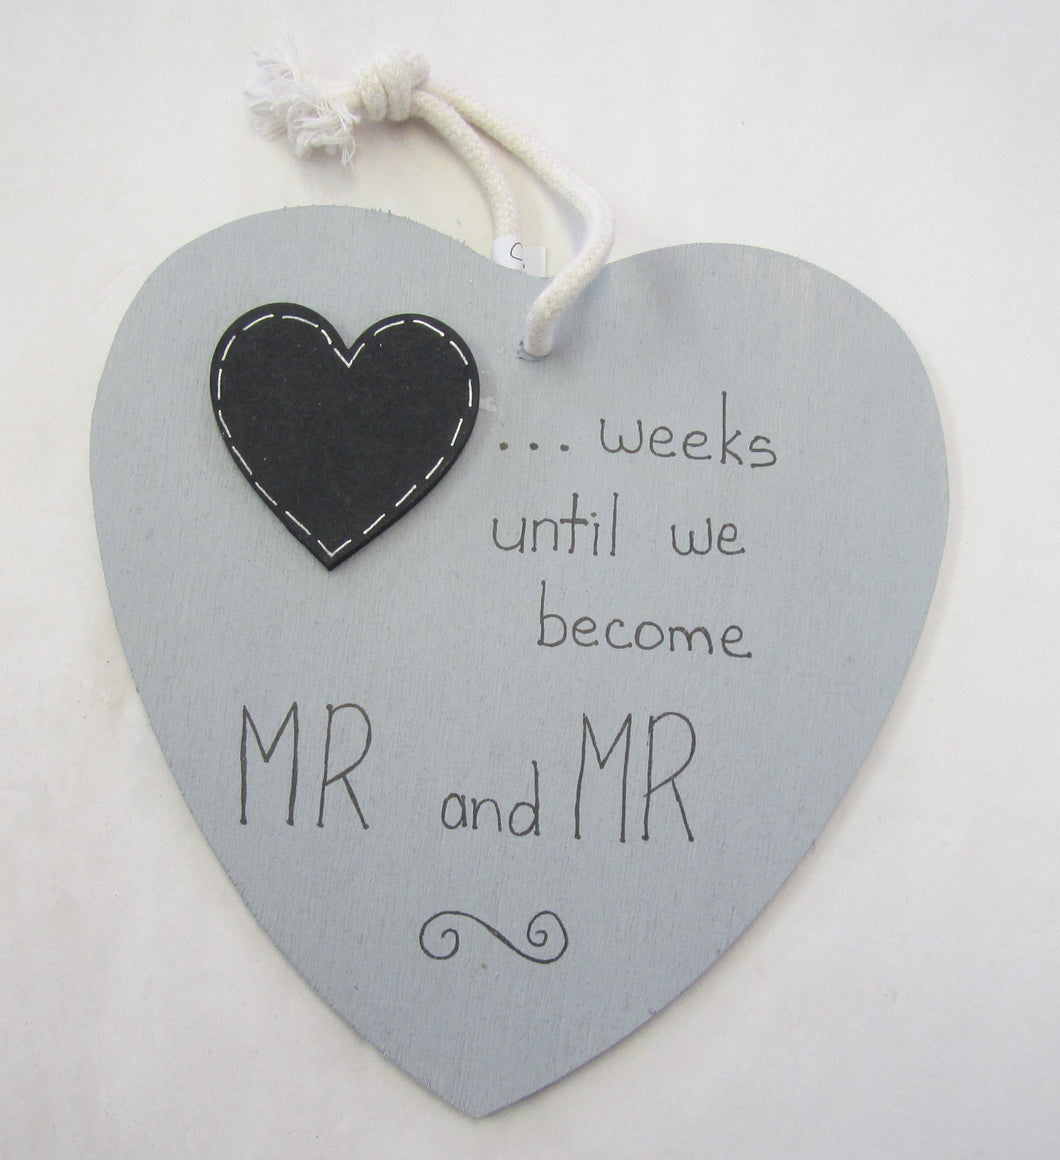 Beautiful handcrafted heart - weeks until we become Mr & Mr